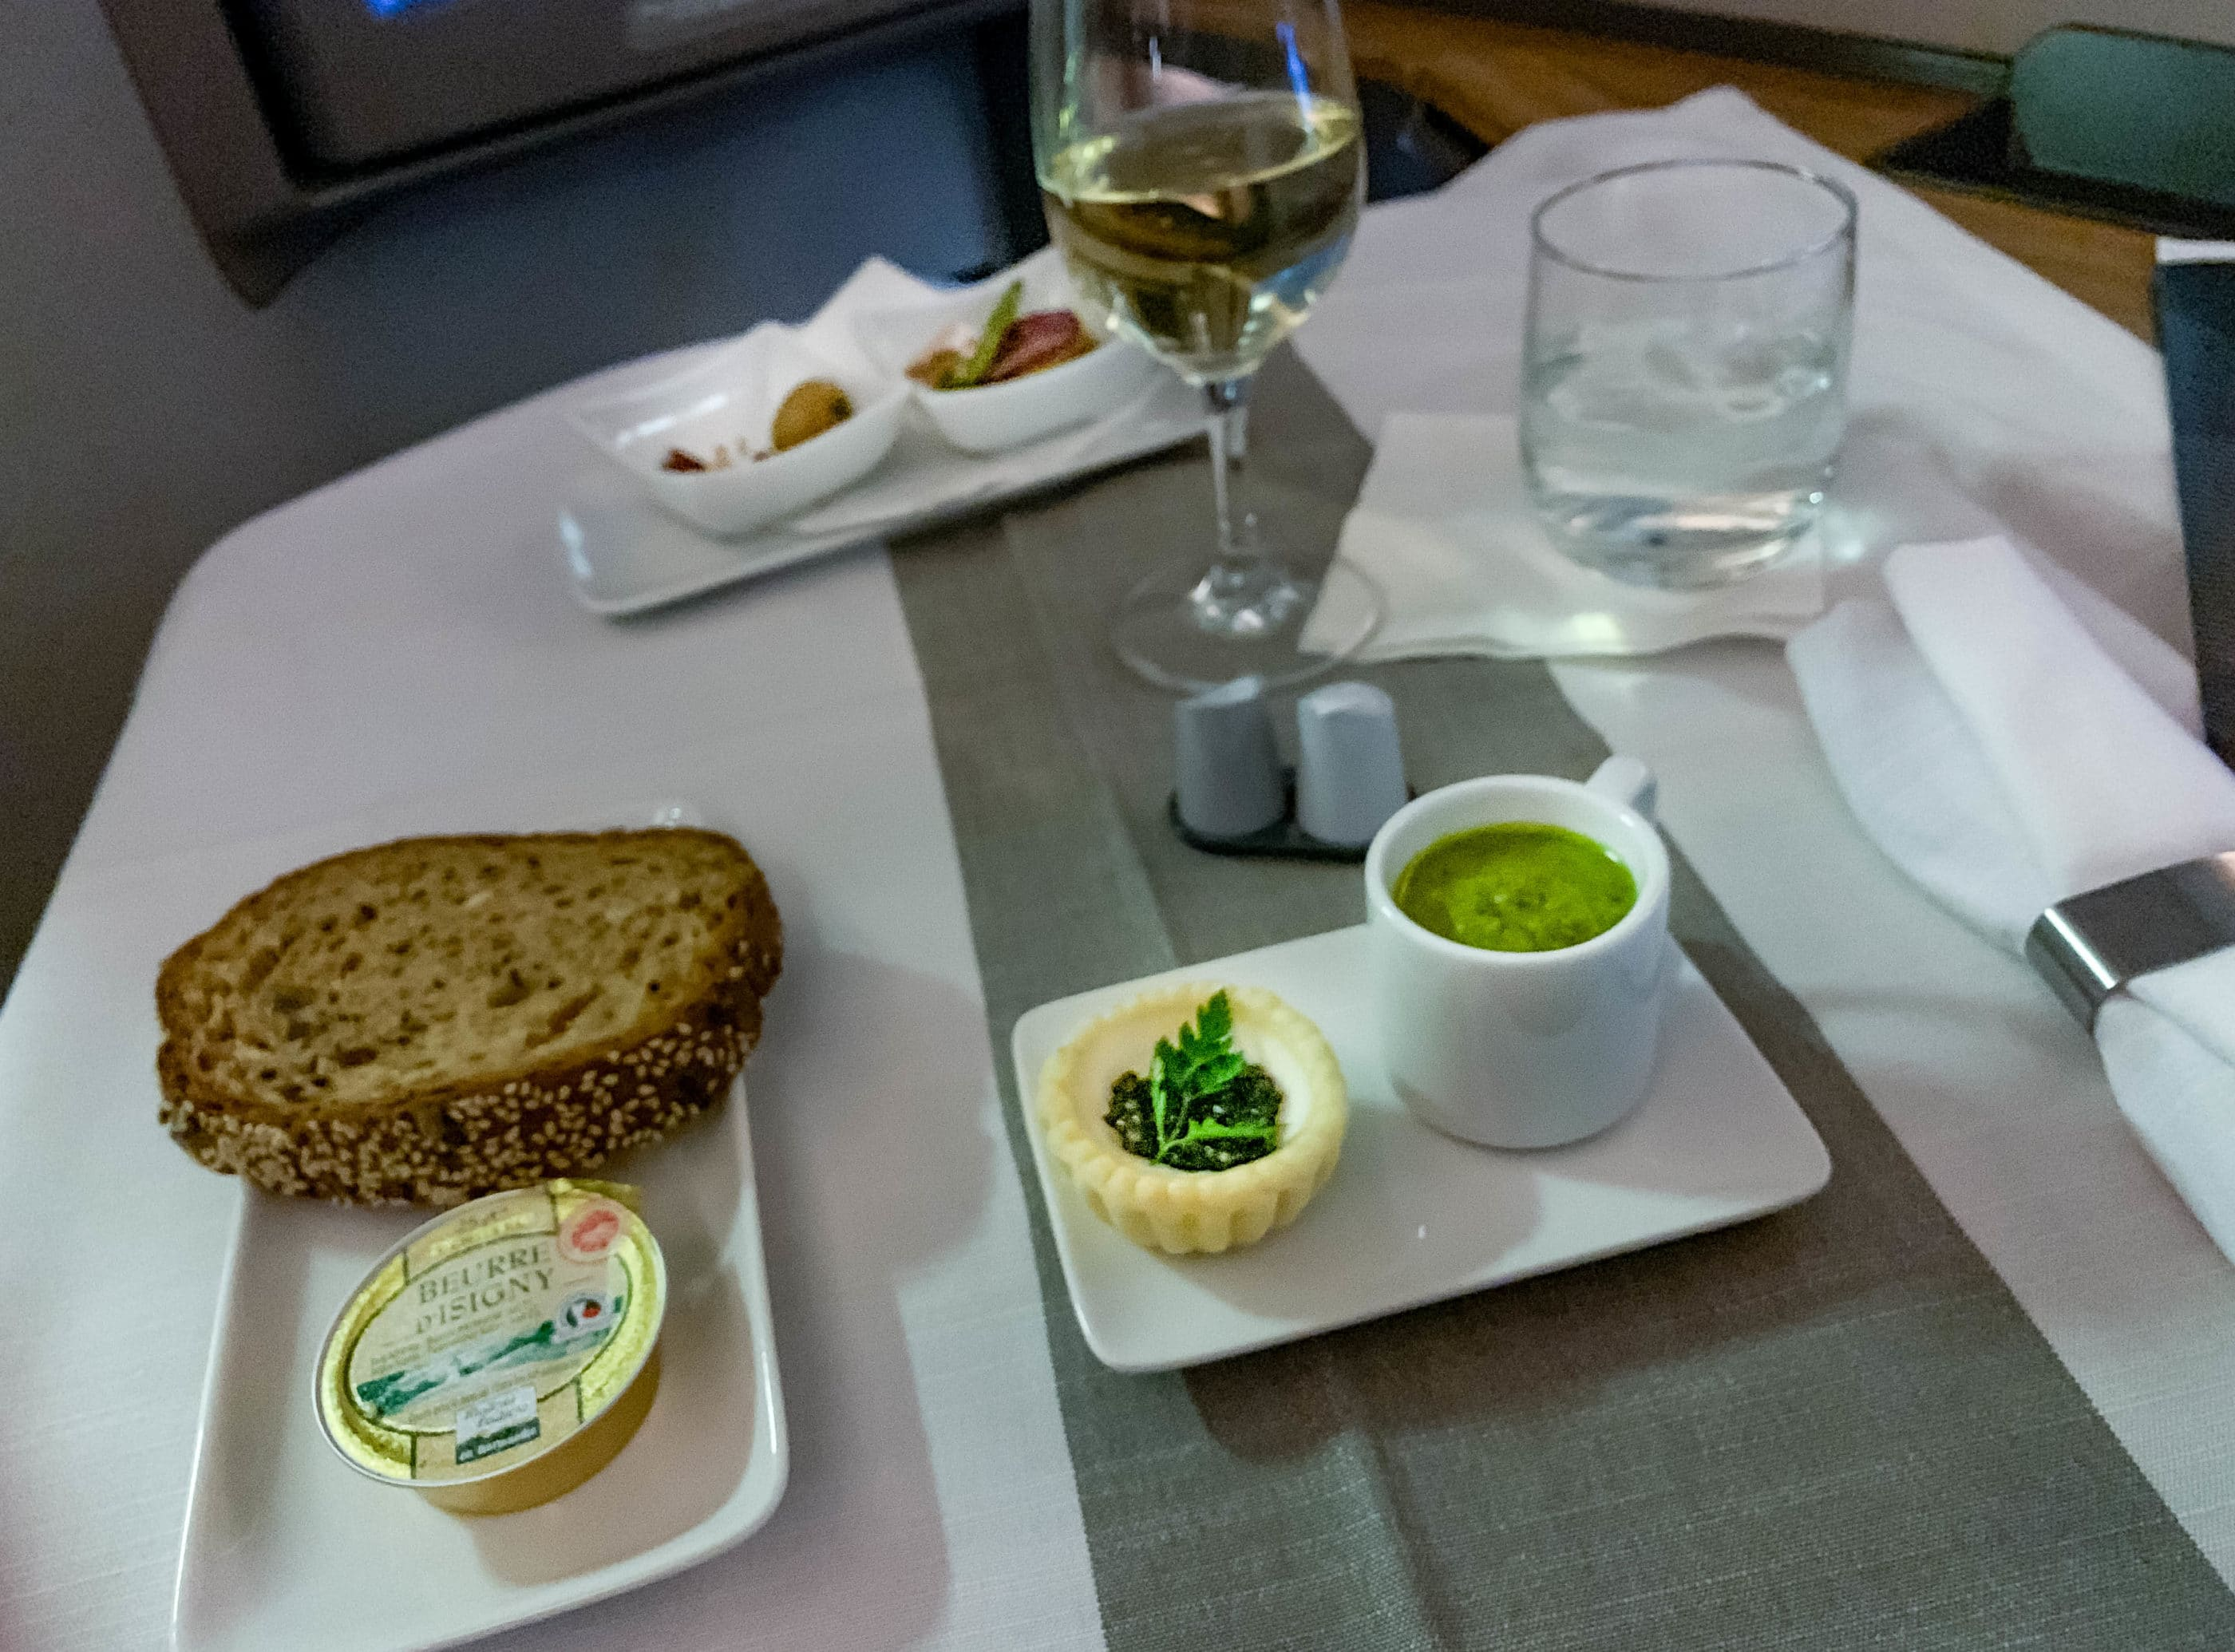 Tart with caviar and kale soup on American Airlines flight 182 first class from HKG-LAX